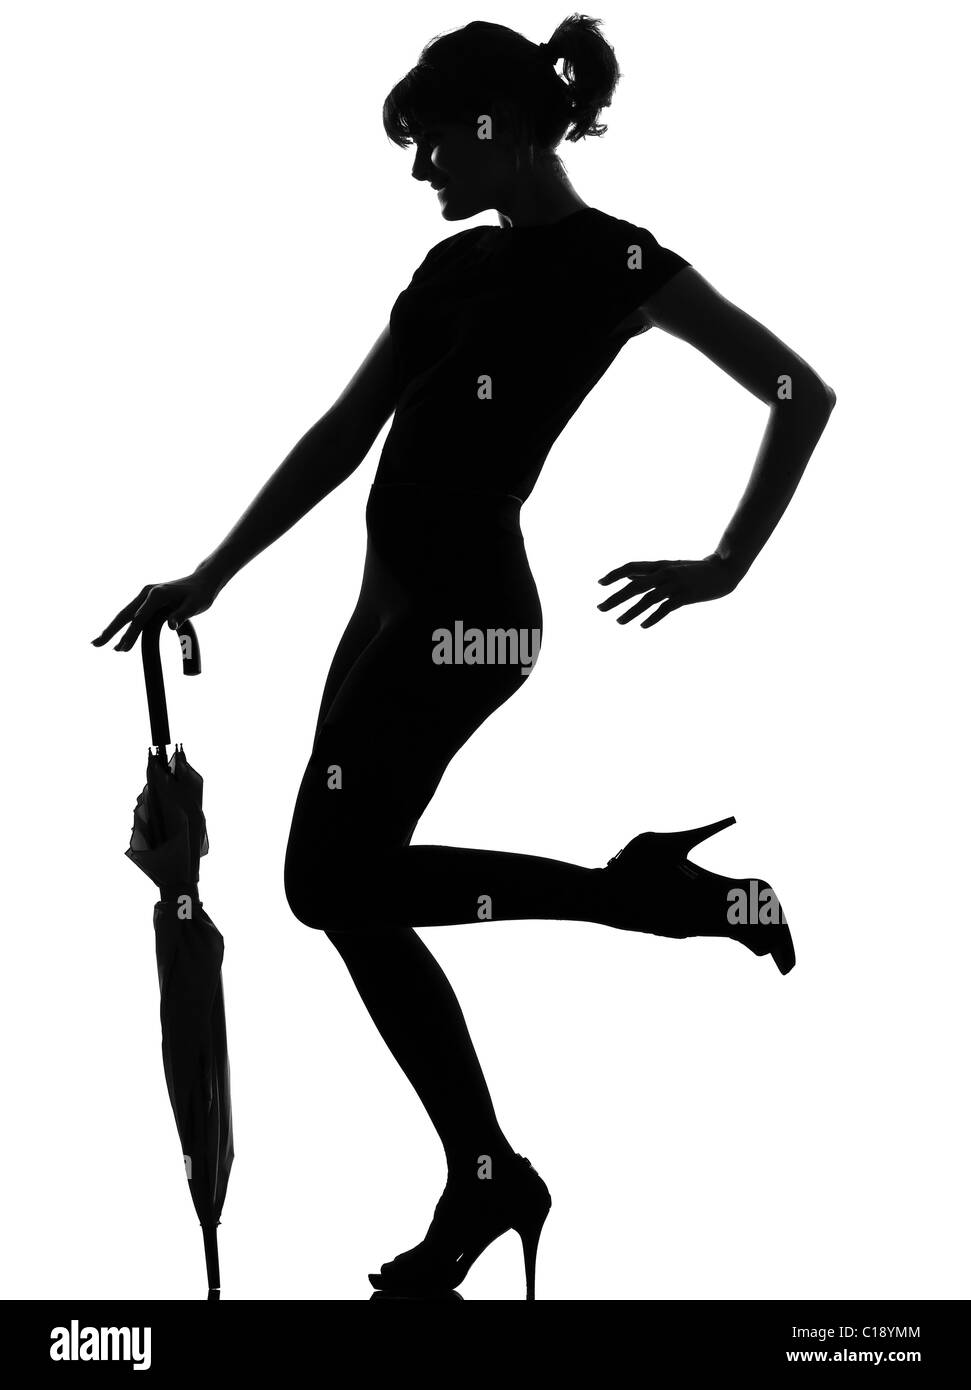 full length silhouette in shadow of a young woman with closed umbrella  in studio on white background isolated - Stock Image